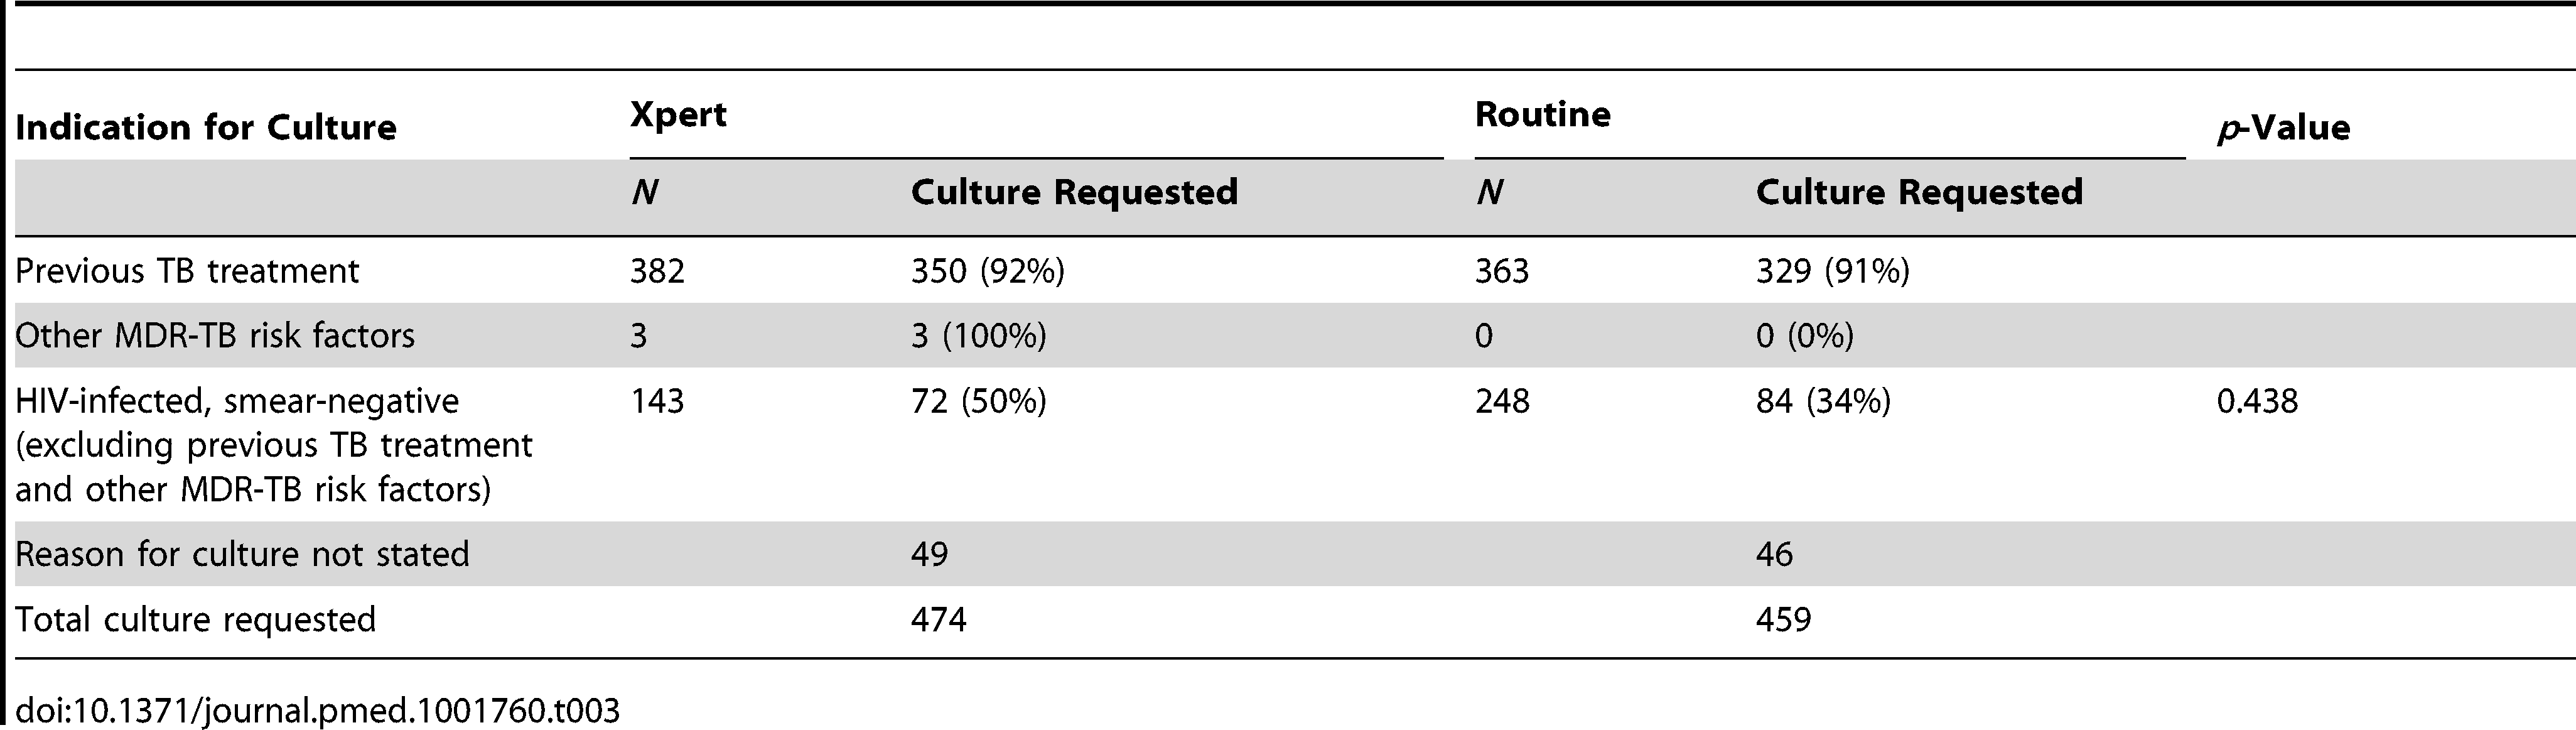 Number and percentage of participants for whom culture was requested by indication across study arms (ITT analysis).